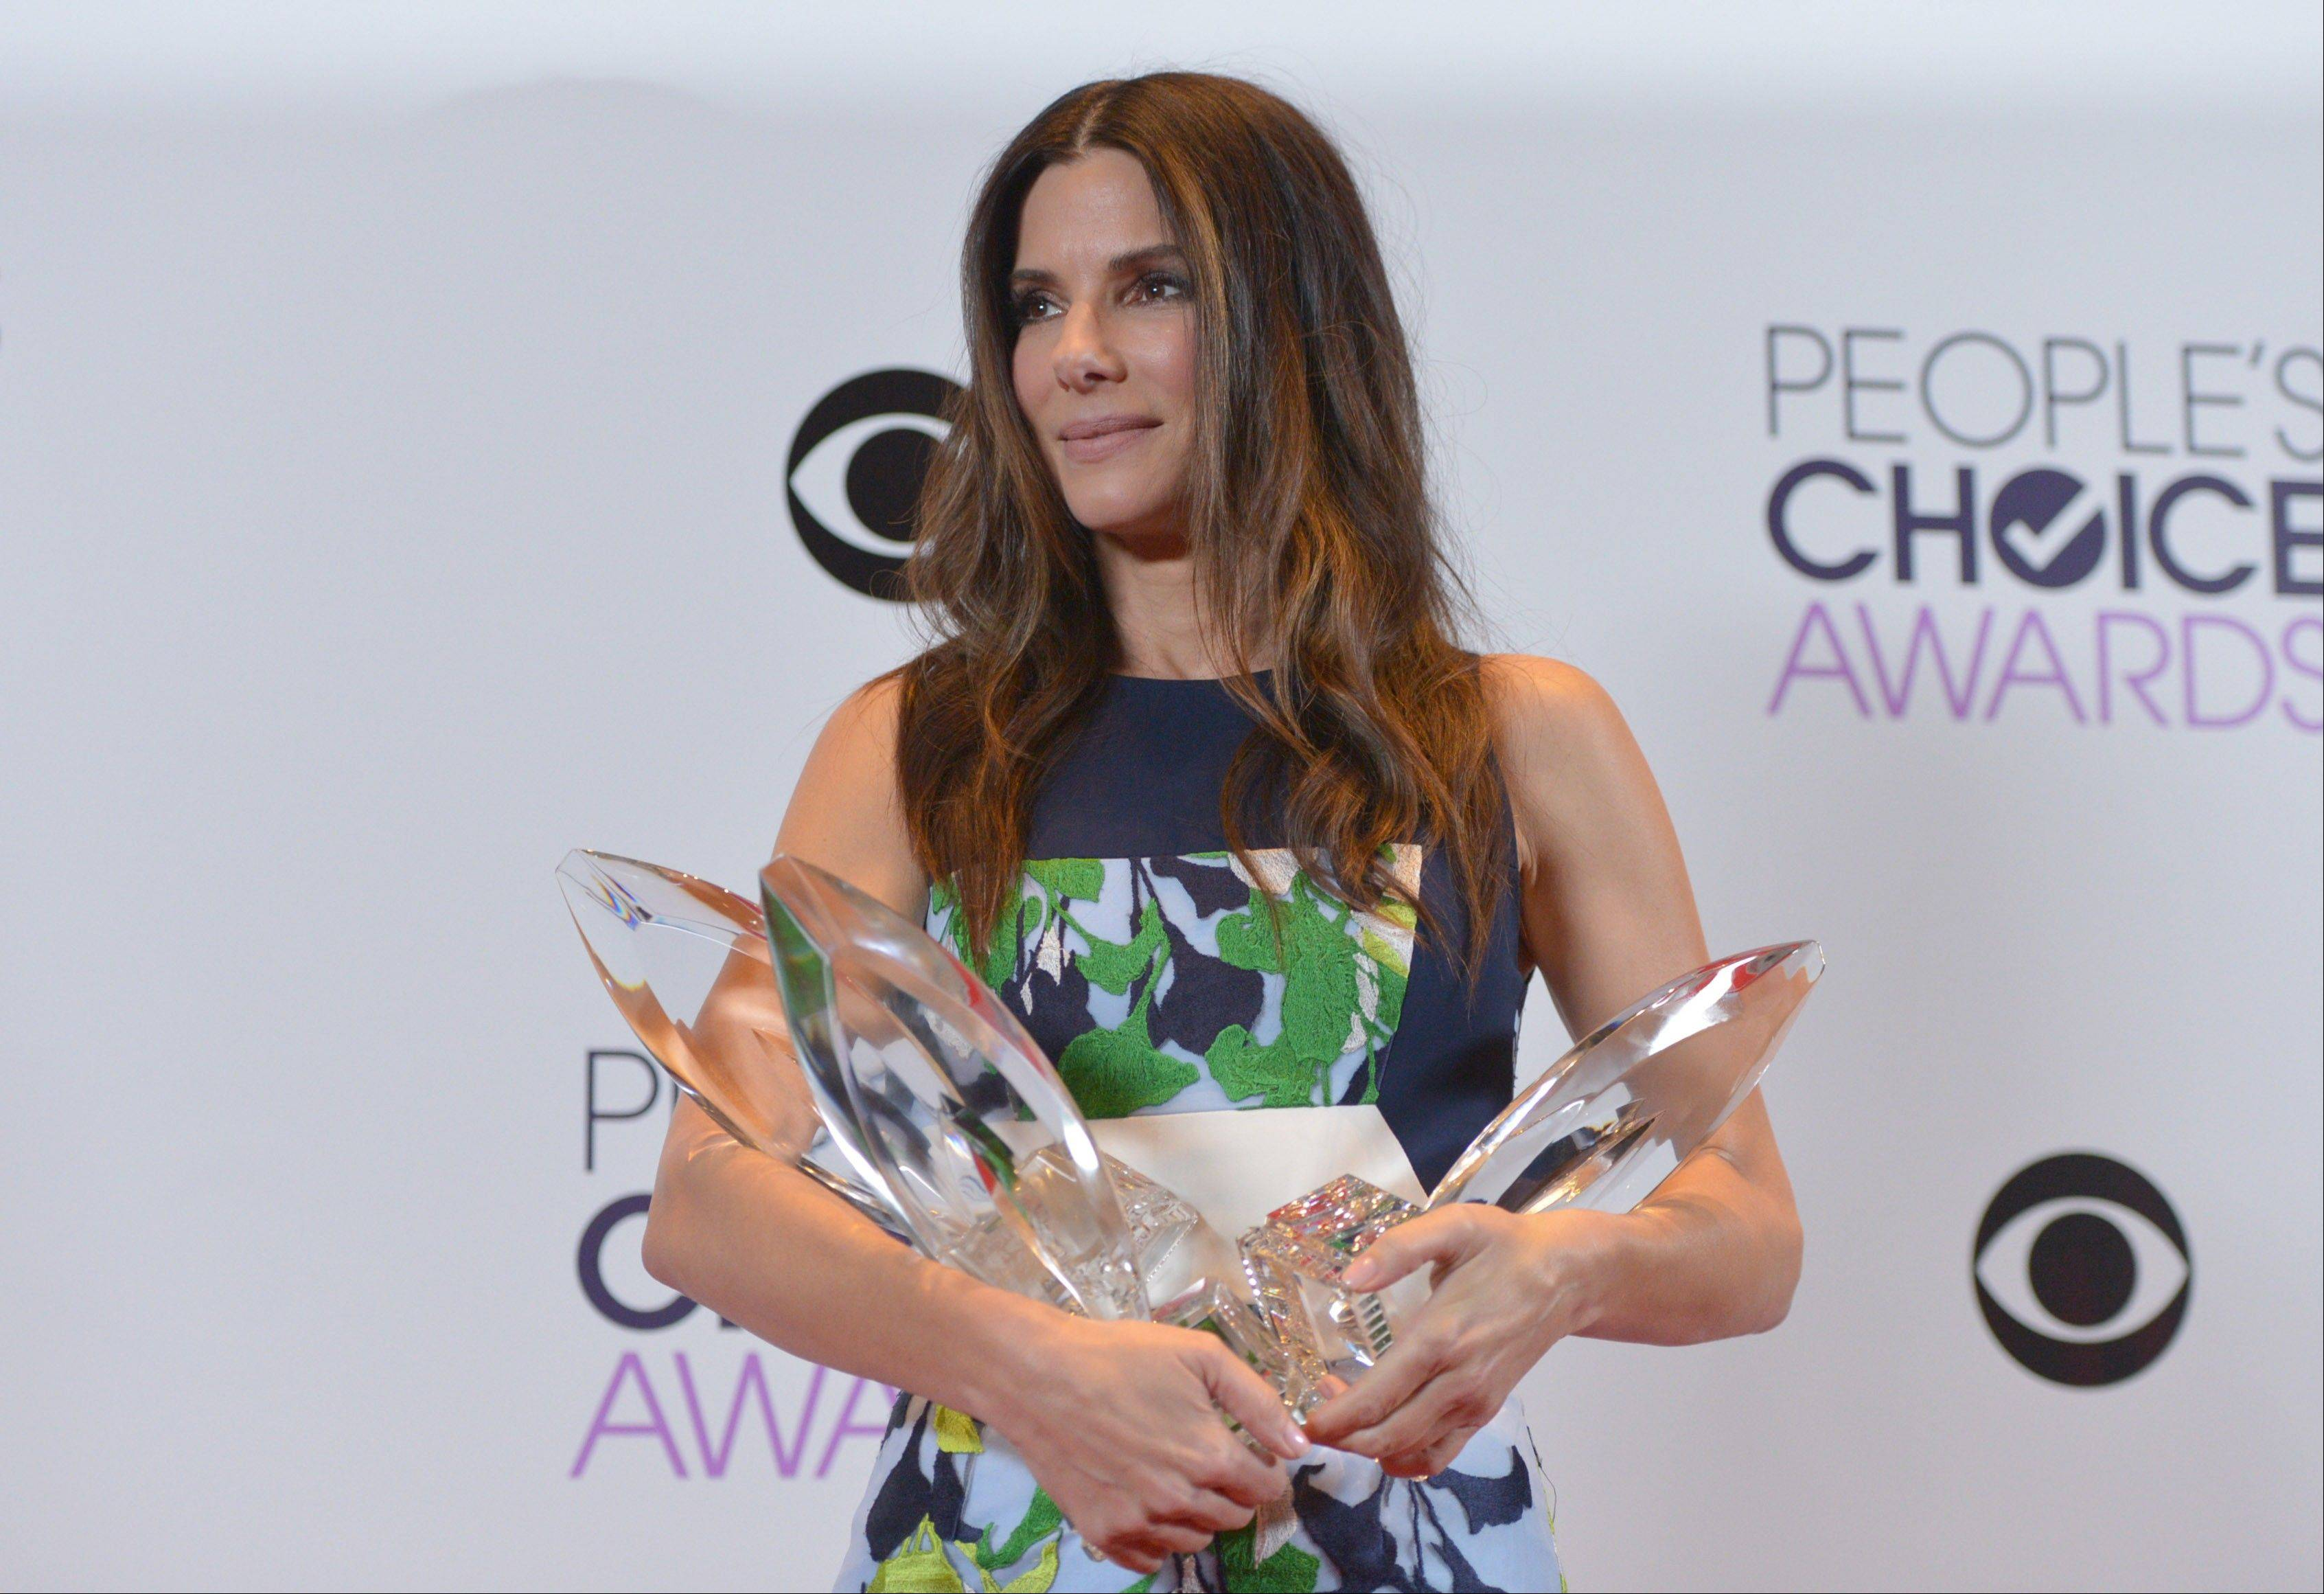 Sandra Bullock won Favorite Movie Actress, Favorite Dramatic Movie Actress and Favorite Comedic Movie Actress Wednesday night at the 40th annual People's Choice Awards in Los Angeles.